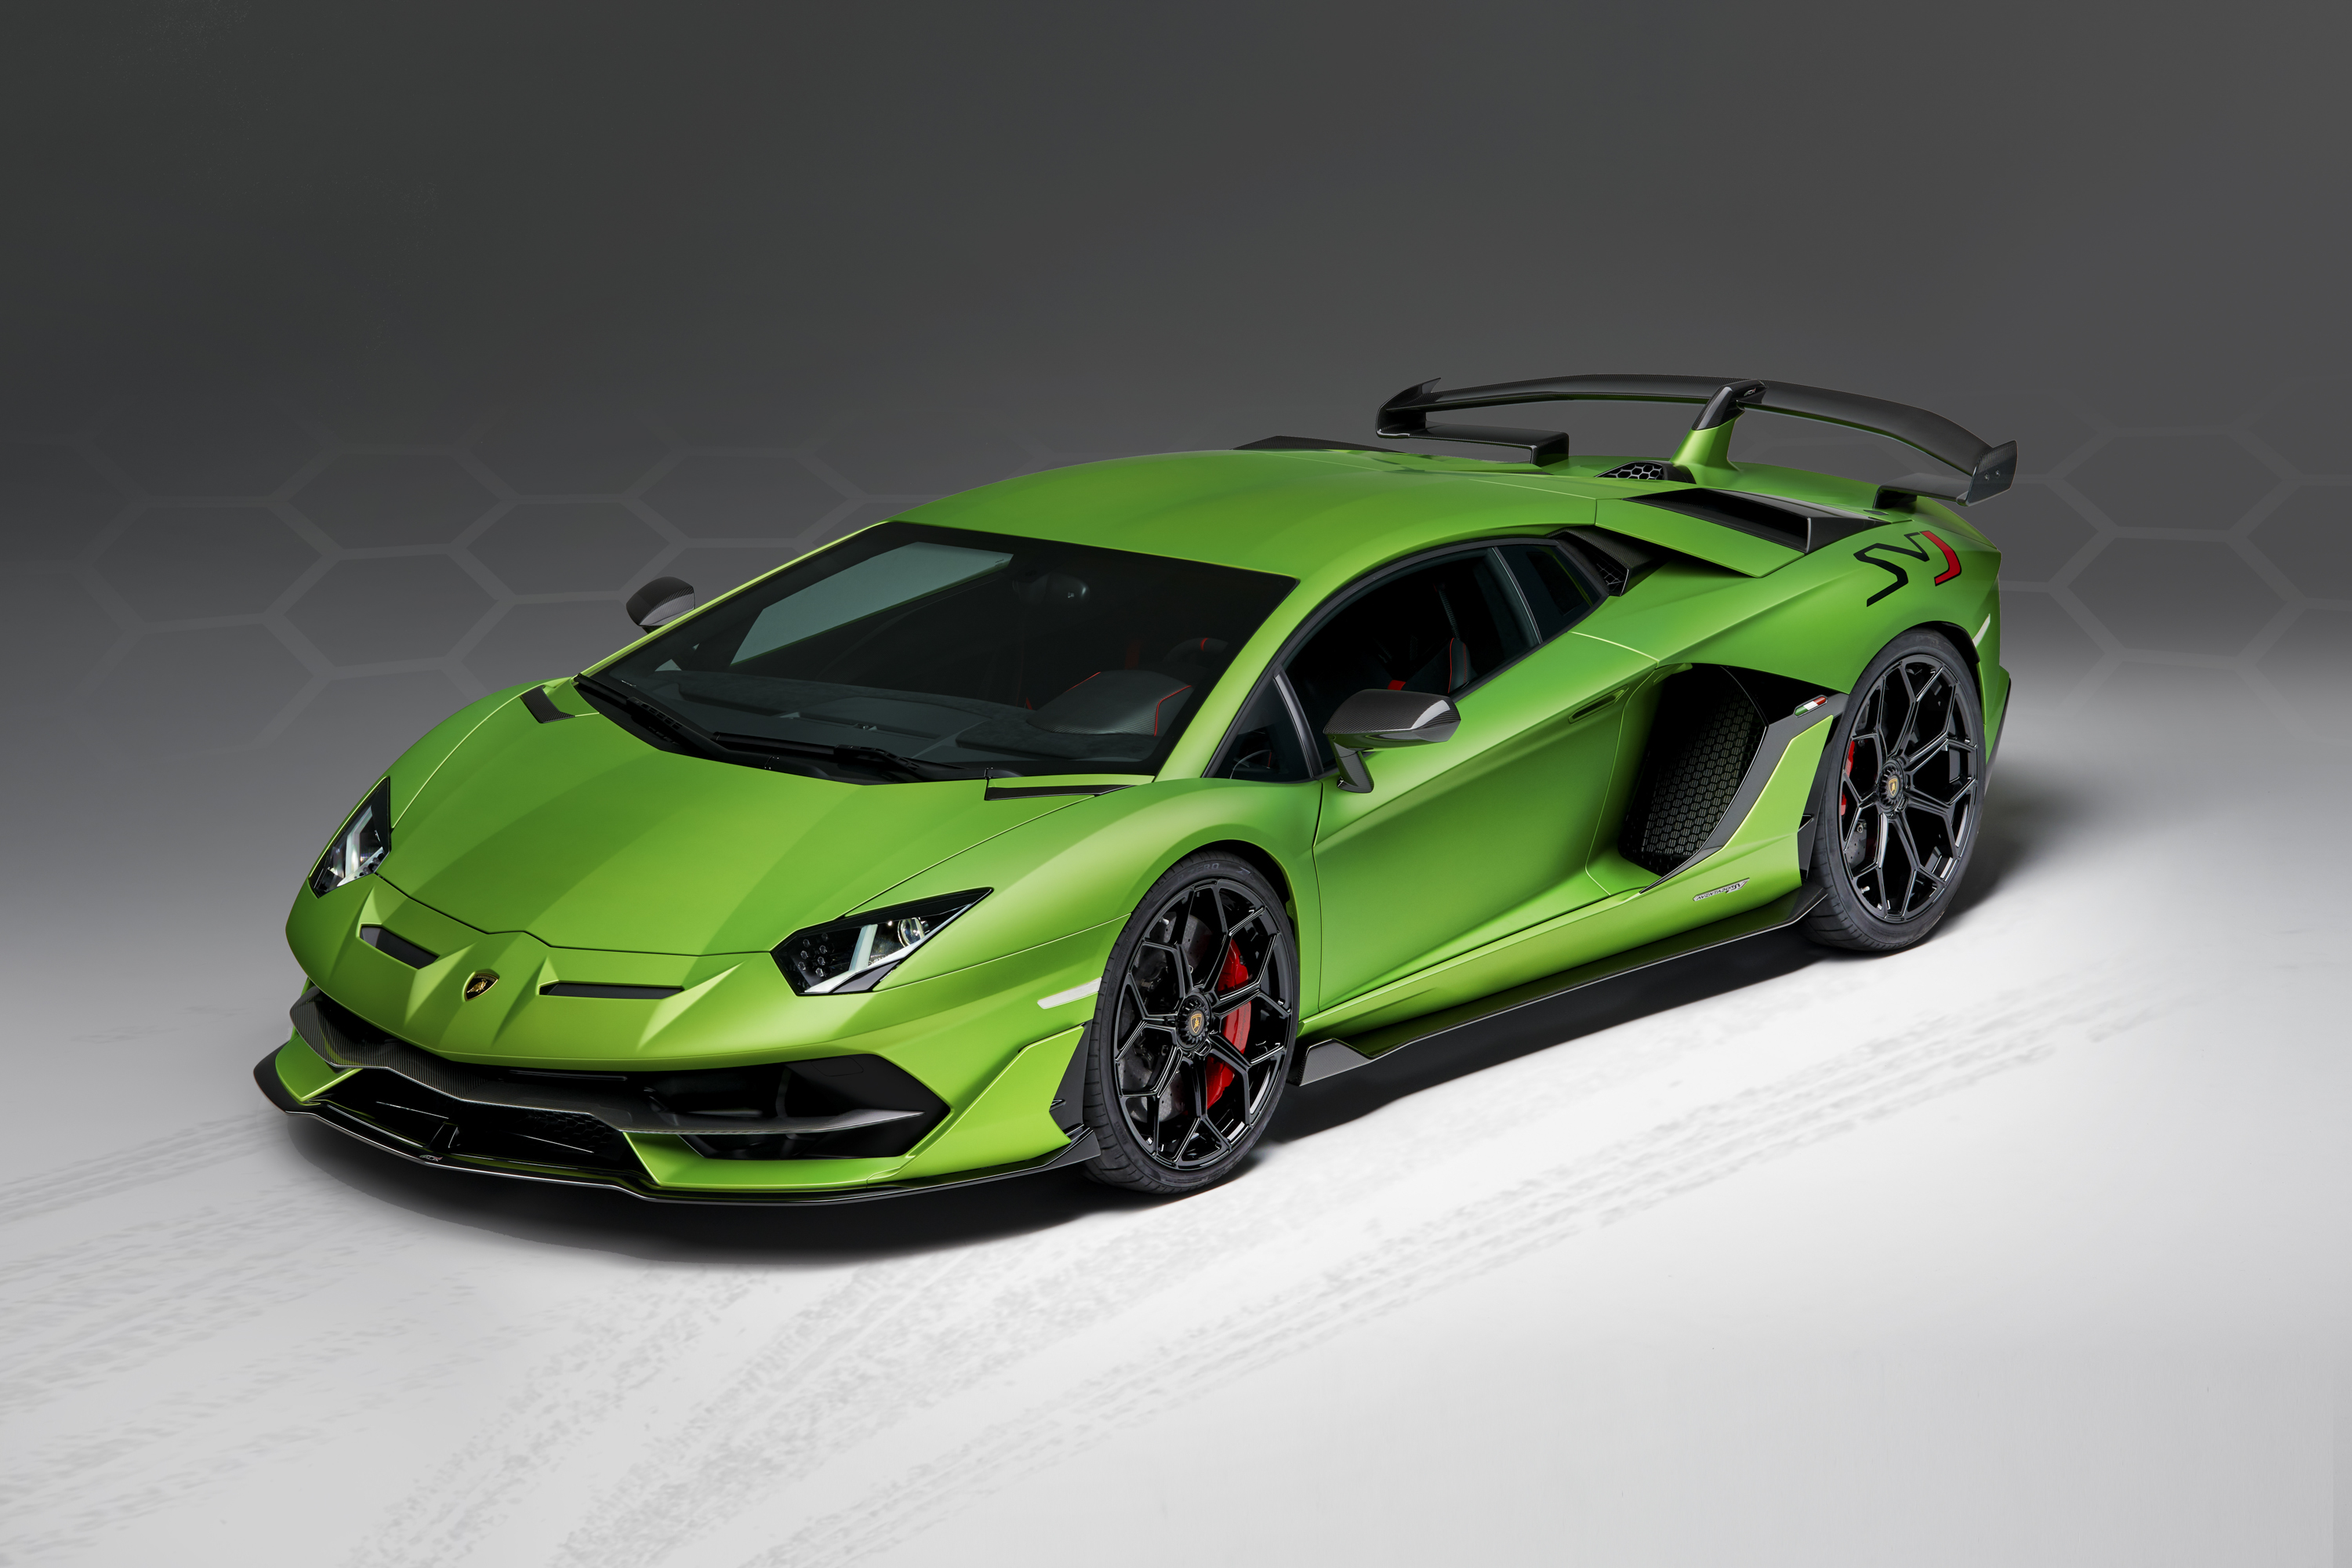 2019 lamborghini aventador performante top speed. Black Bedroom Furniture Sets. Home Design Ideas